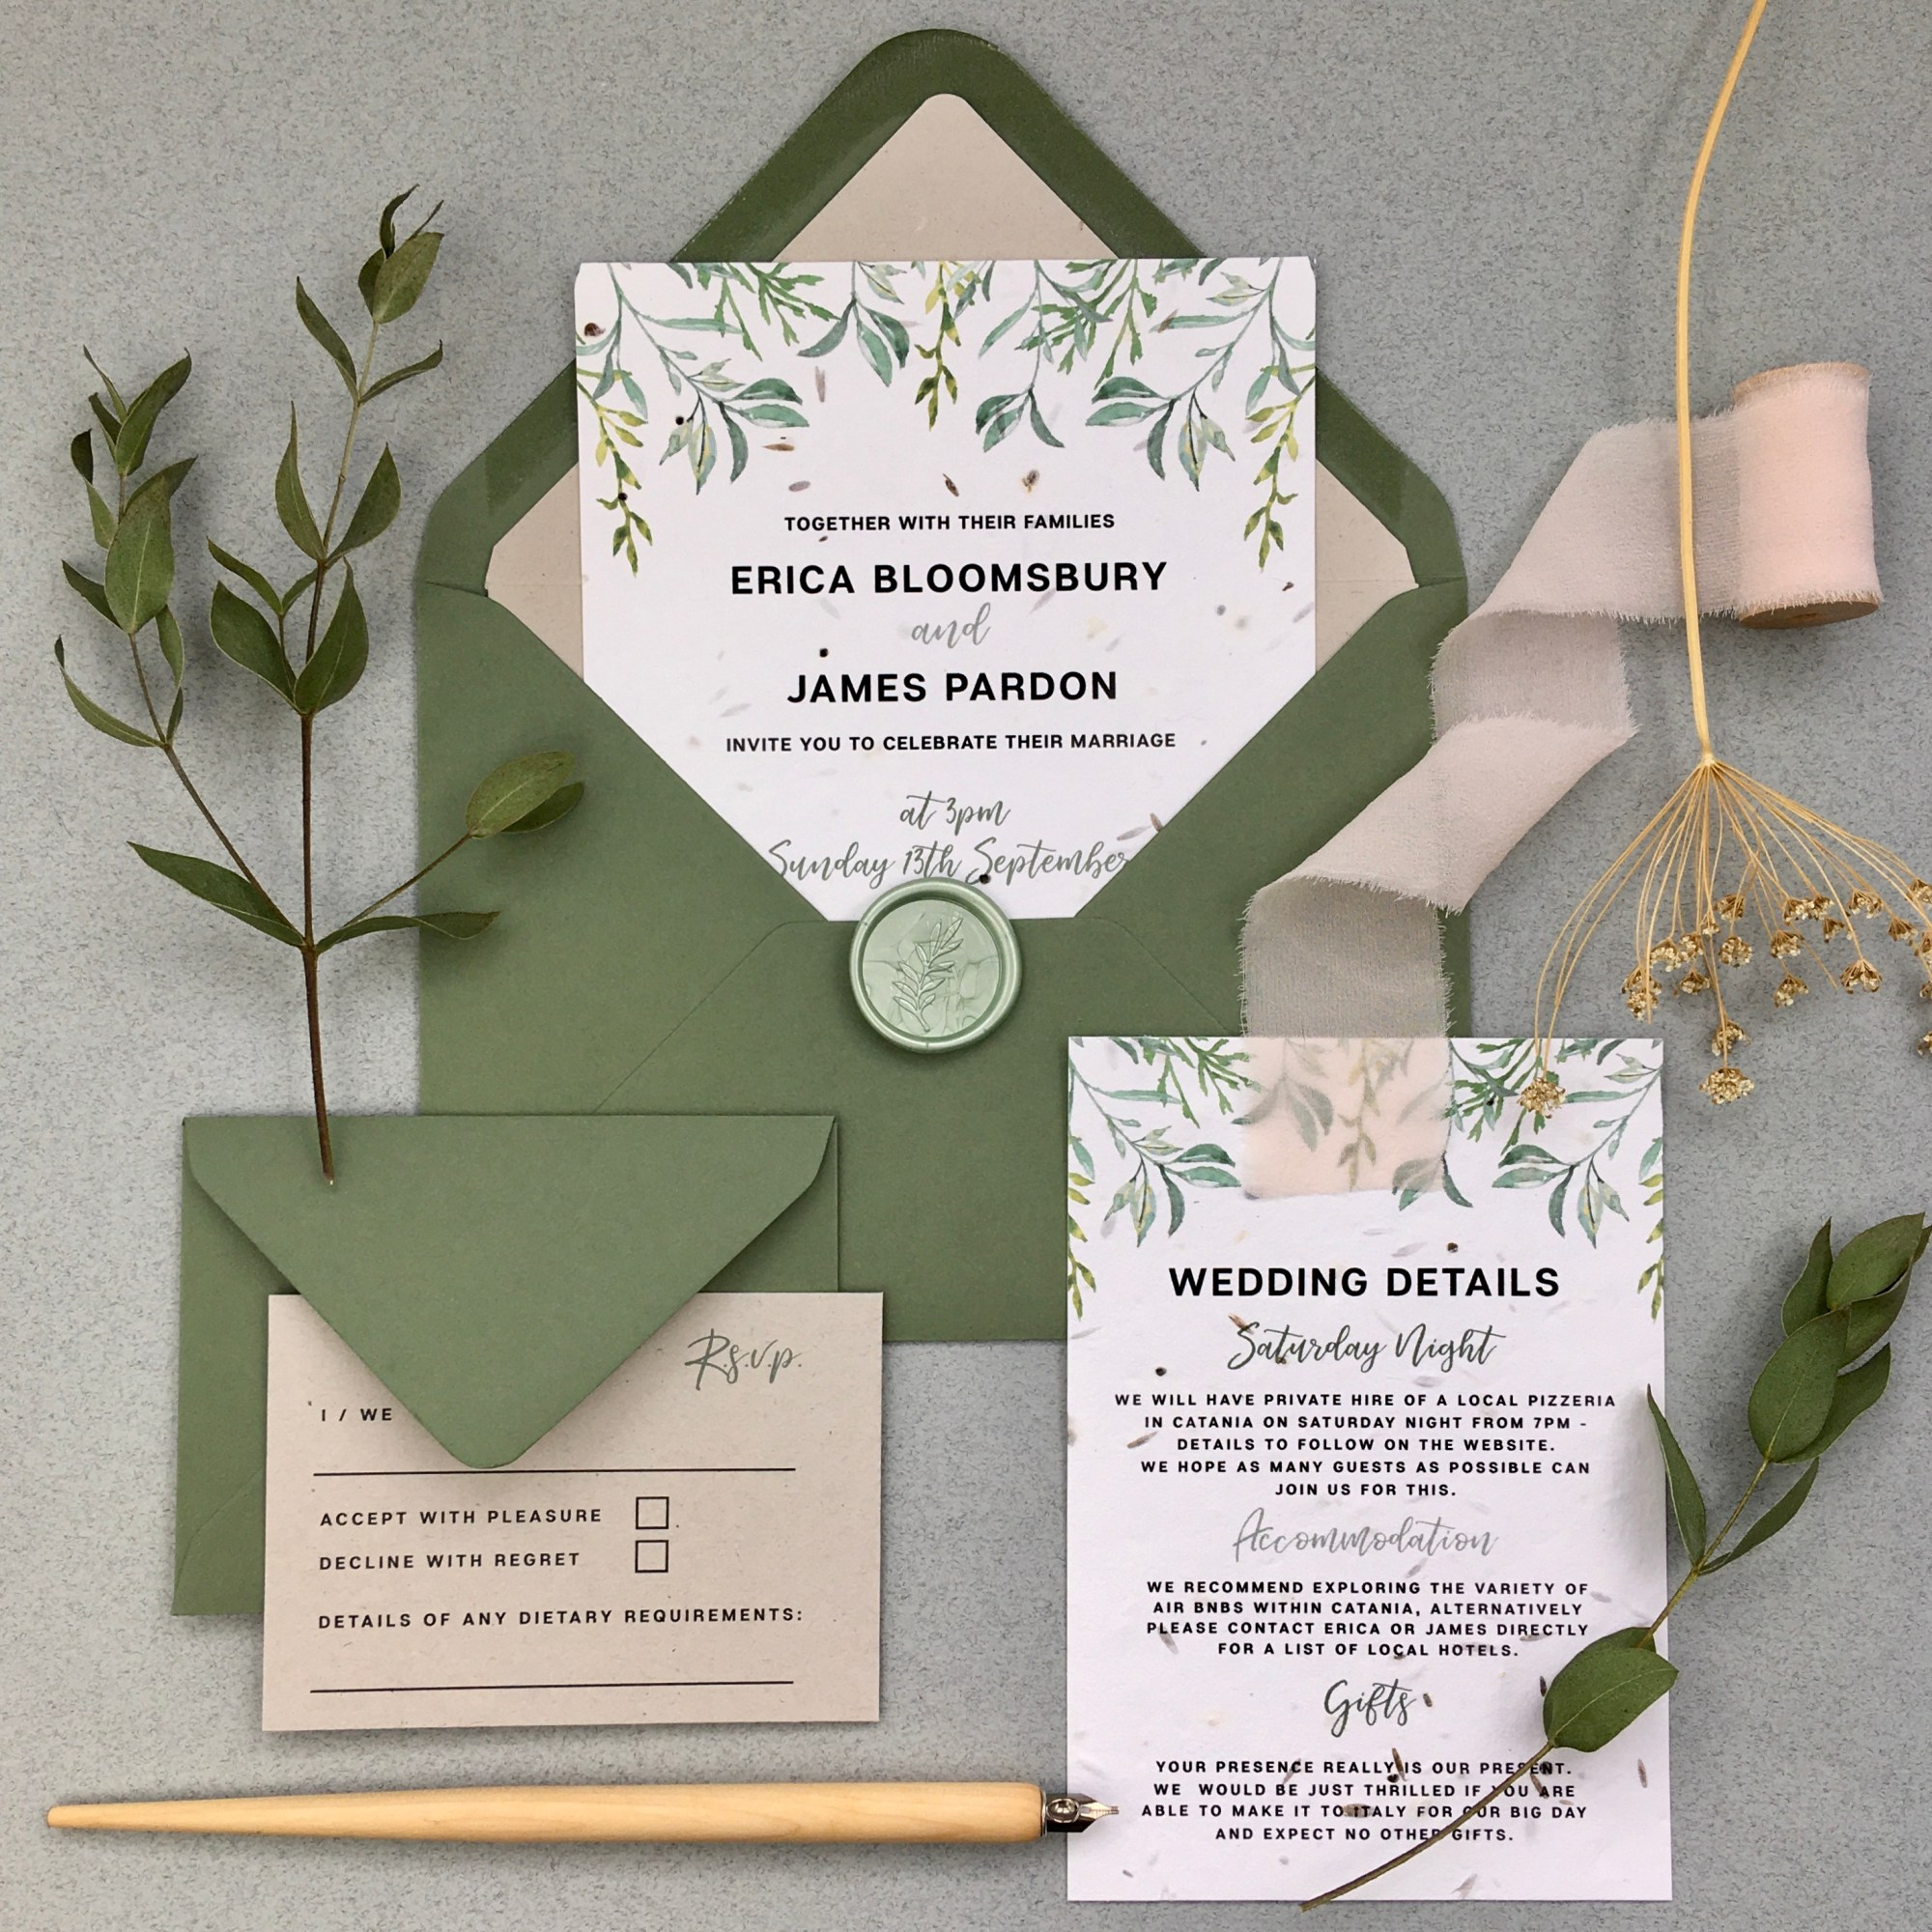 seed paper, olive, grove, branch, Italy, Tuscany, Italian, garden, classic, simple, foliage, green, wedding, invitation, invites, invitations, eco, recycled, Cornwall, Cornish, stationery, Laura Likes